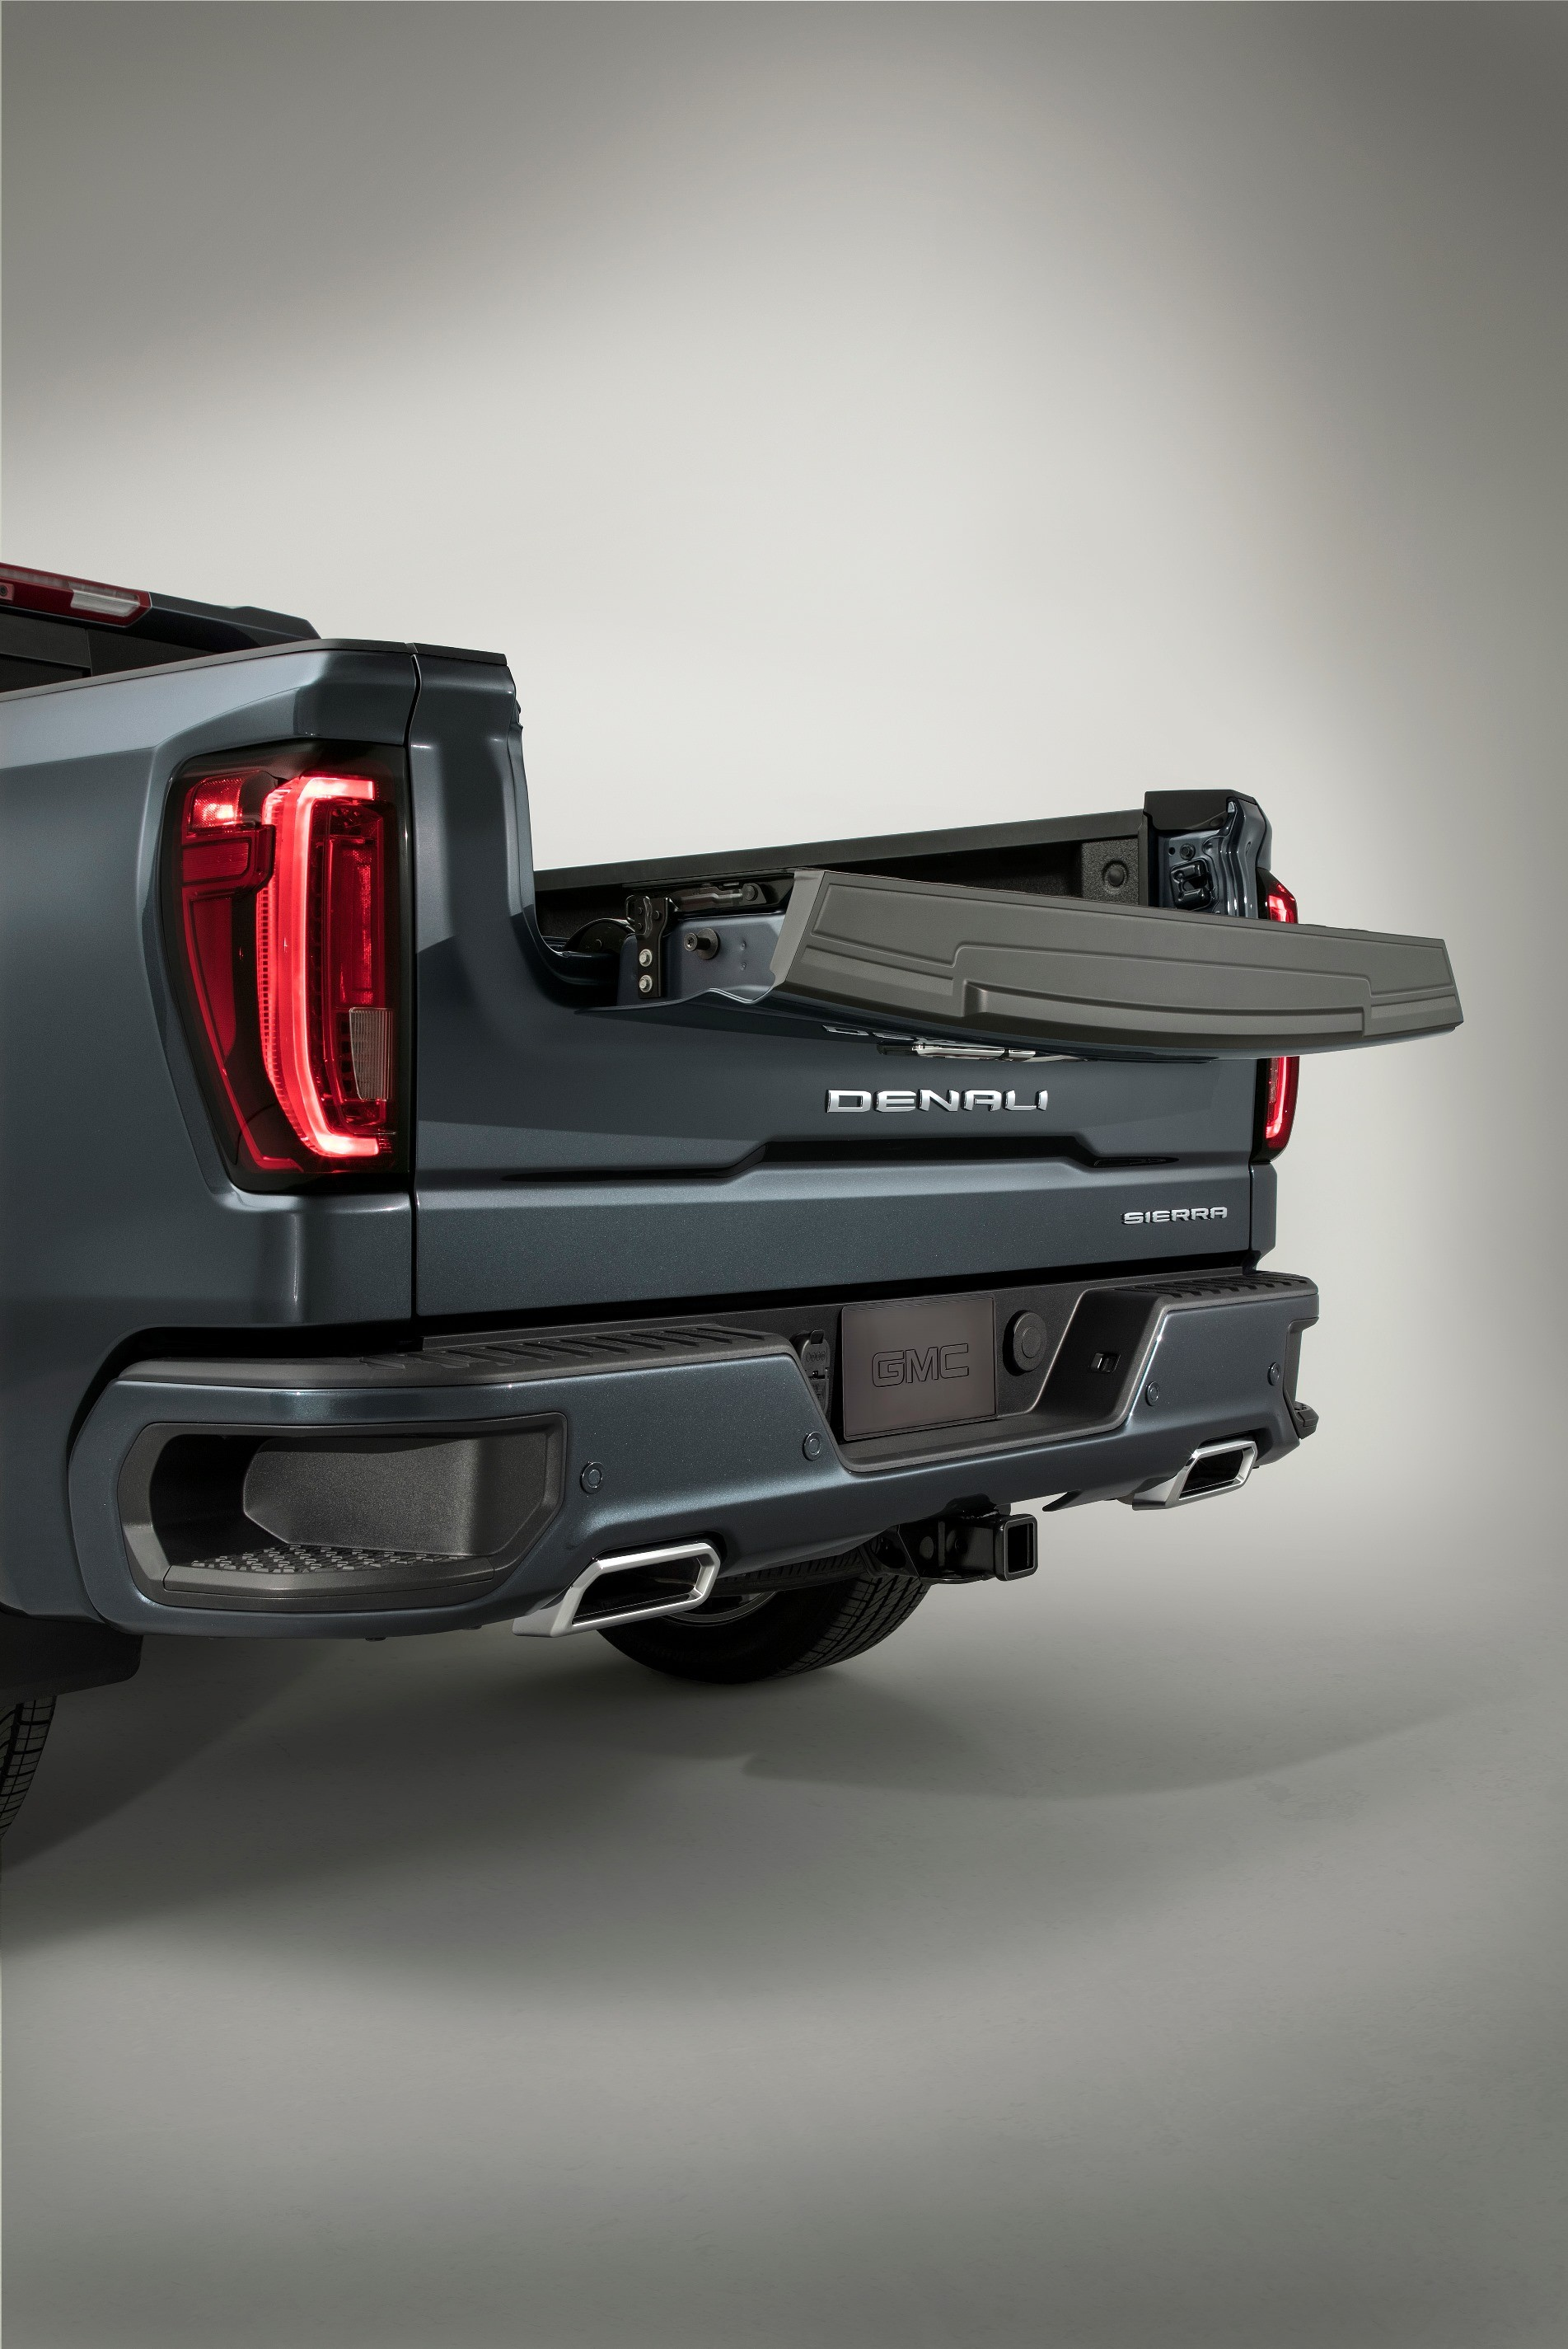 2019 GMC Sierra Duramax Diesel Edges Out Ford F-150 ...